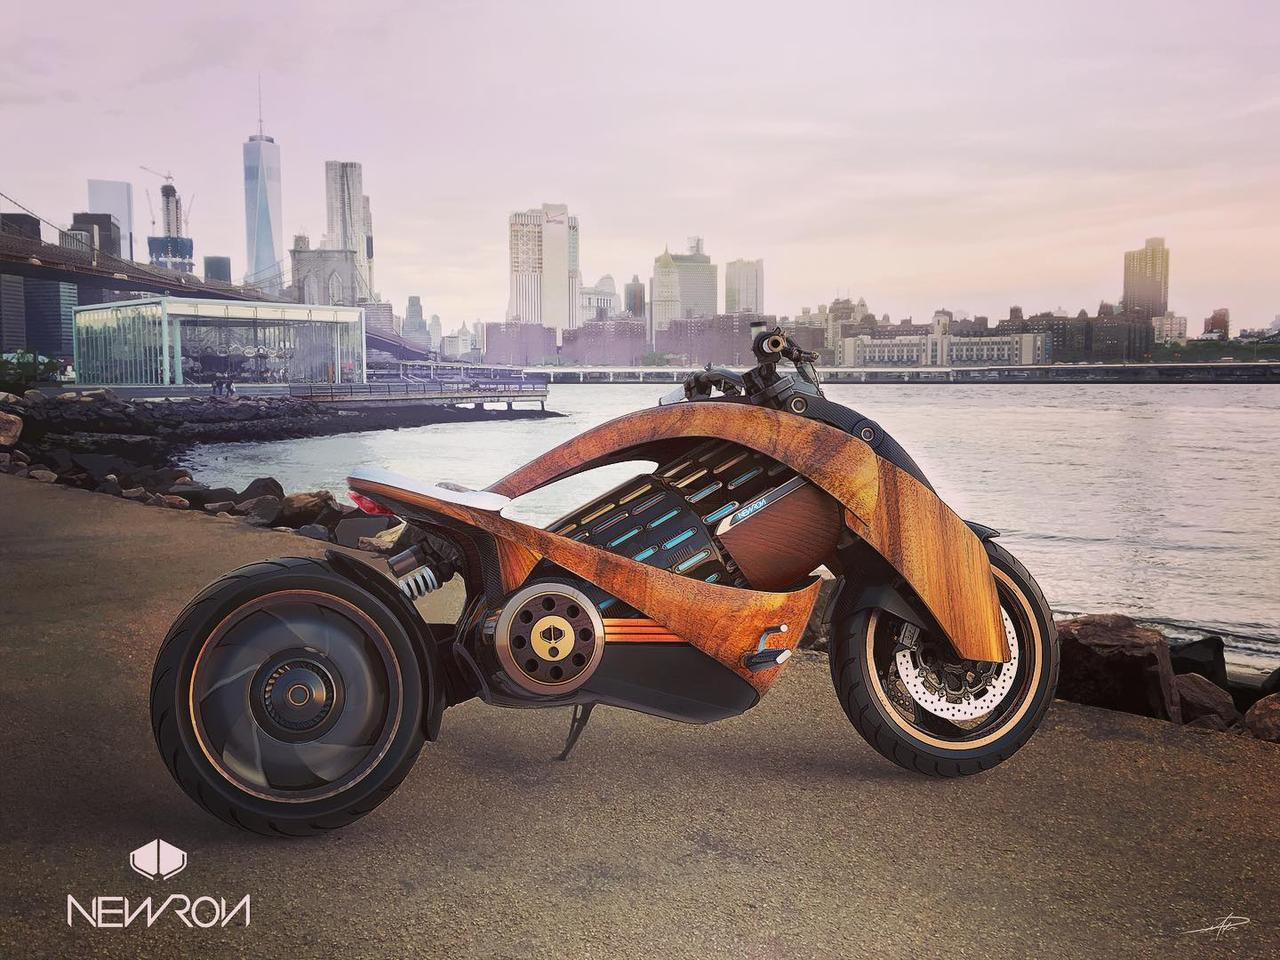 Having been through accelerator programs by Dassault Systems and Advans in France, Newron is hoping to build 12 of these eye-catching electric motorcycles in 2020